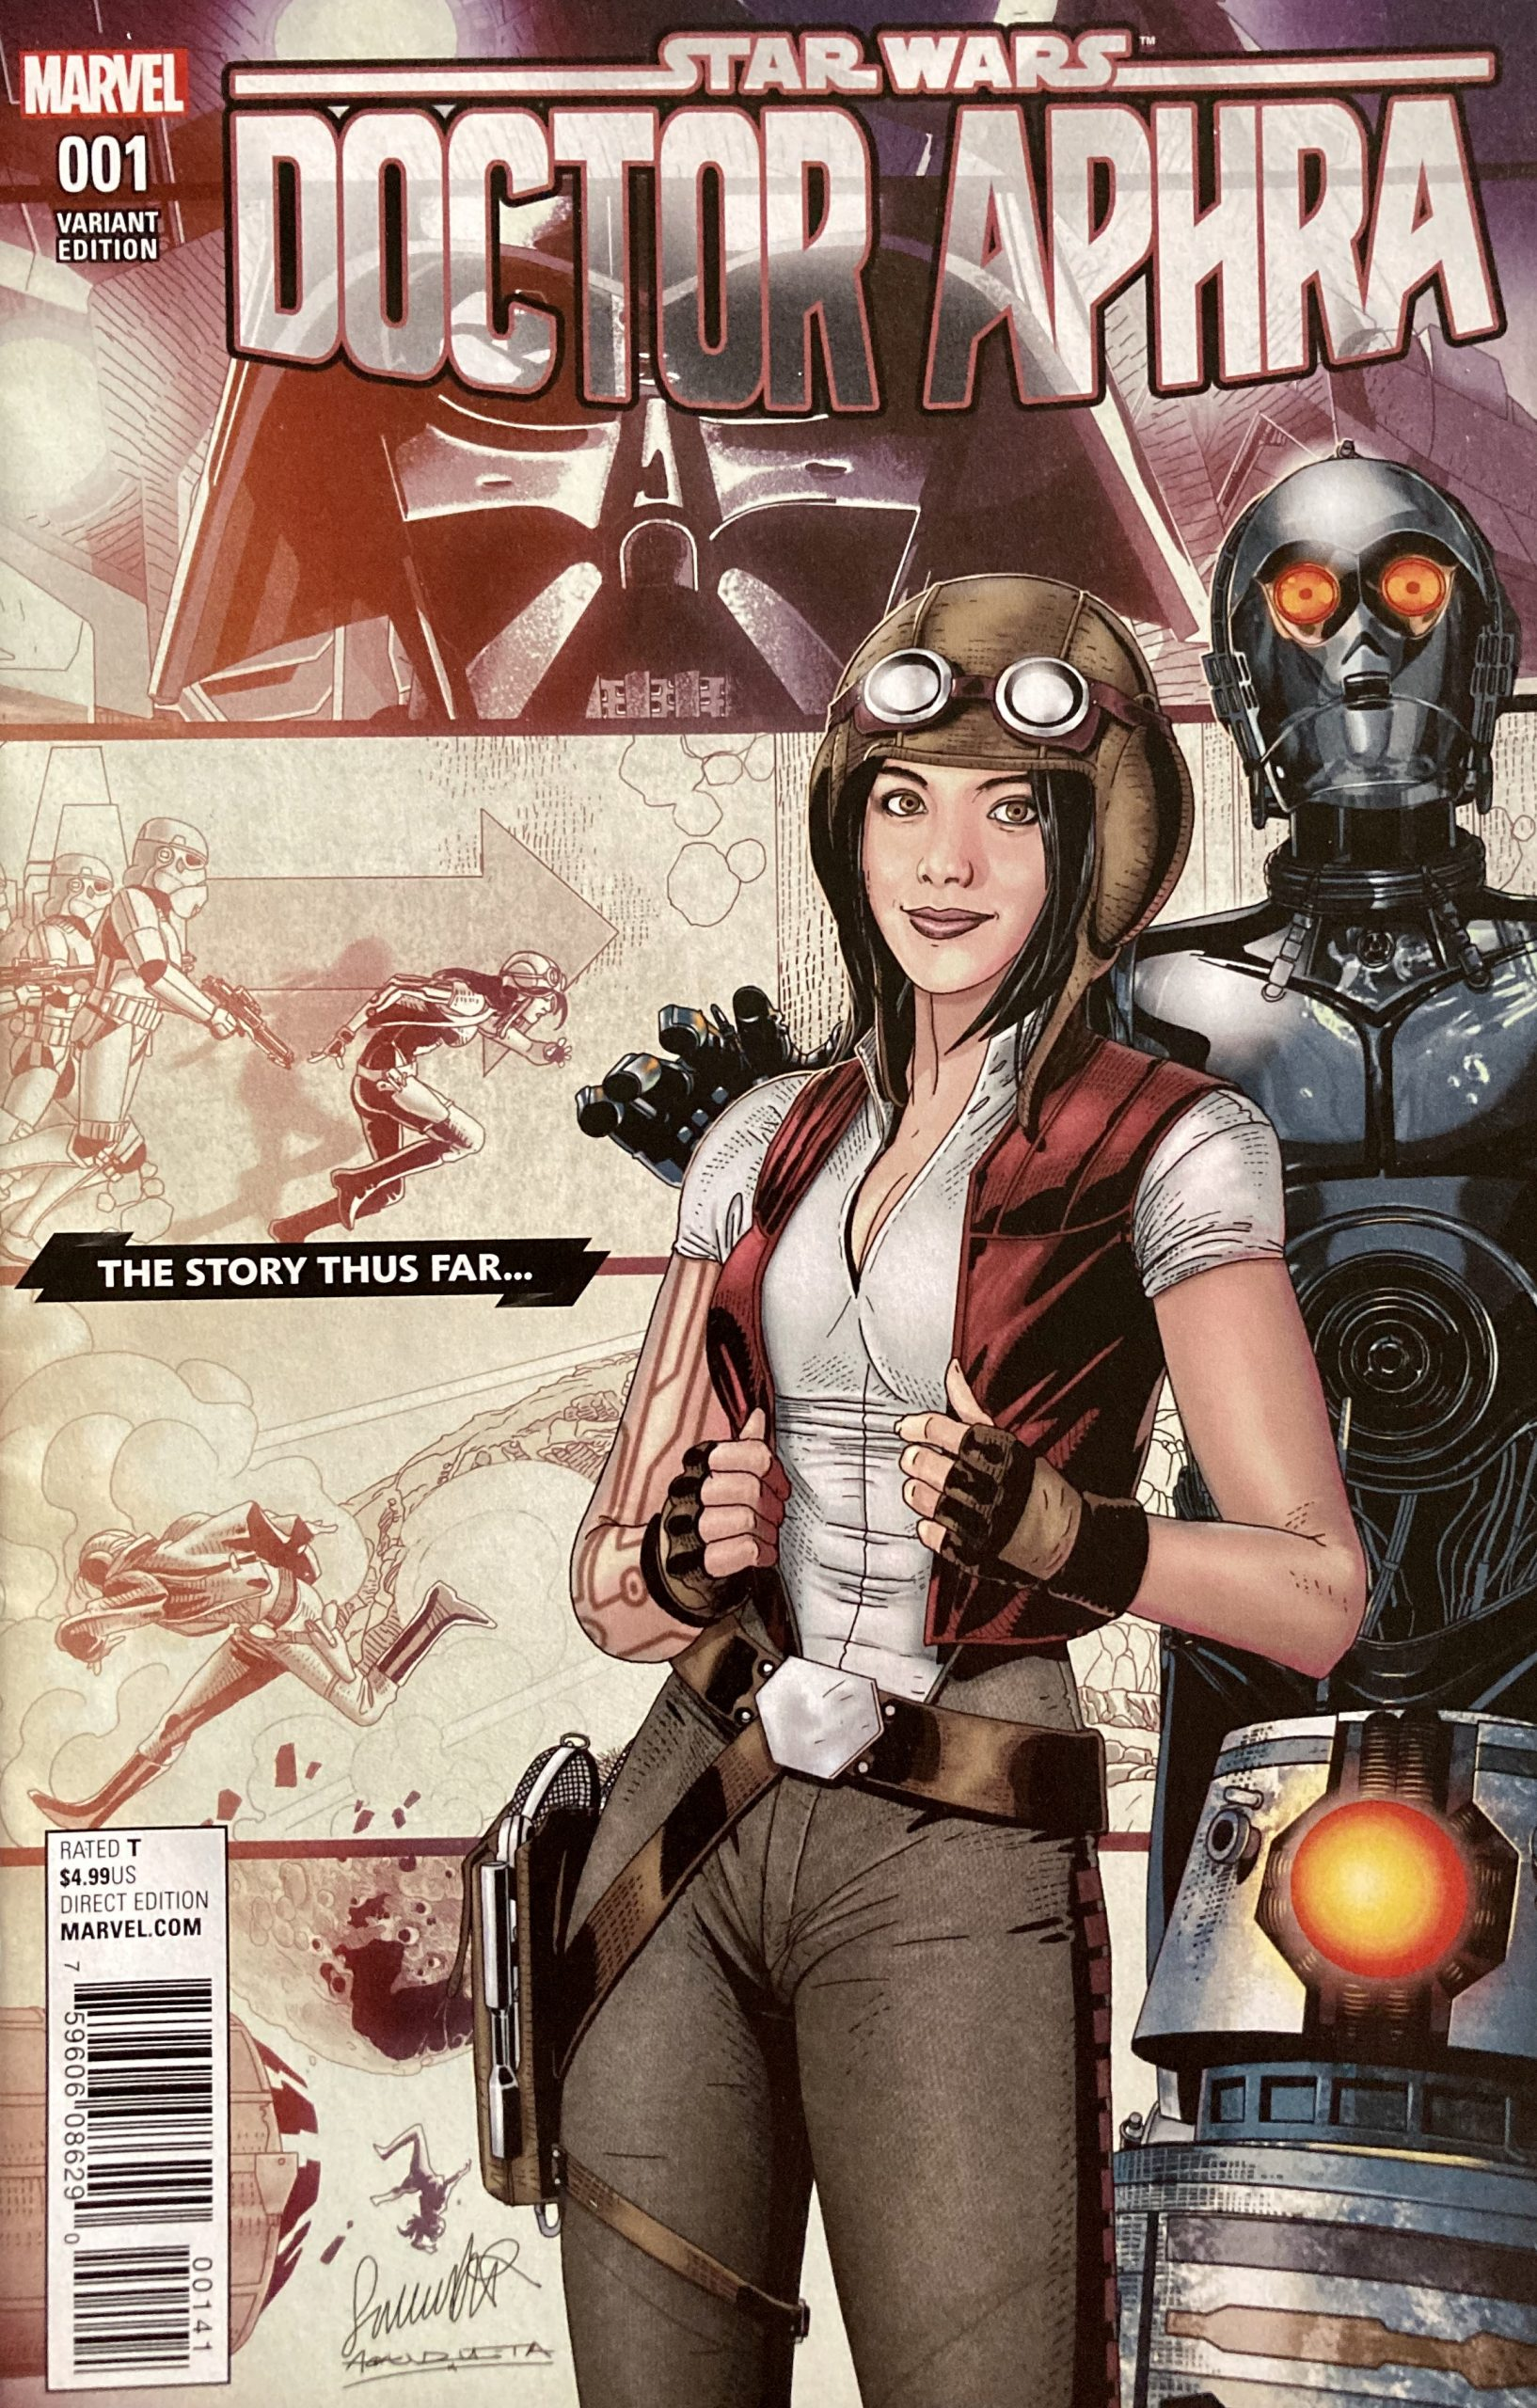 Star Wars: Doctor Aphra (2017) #1 Variant Cover